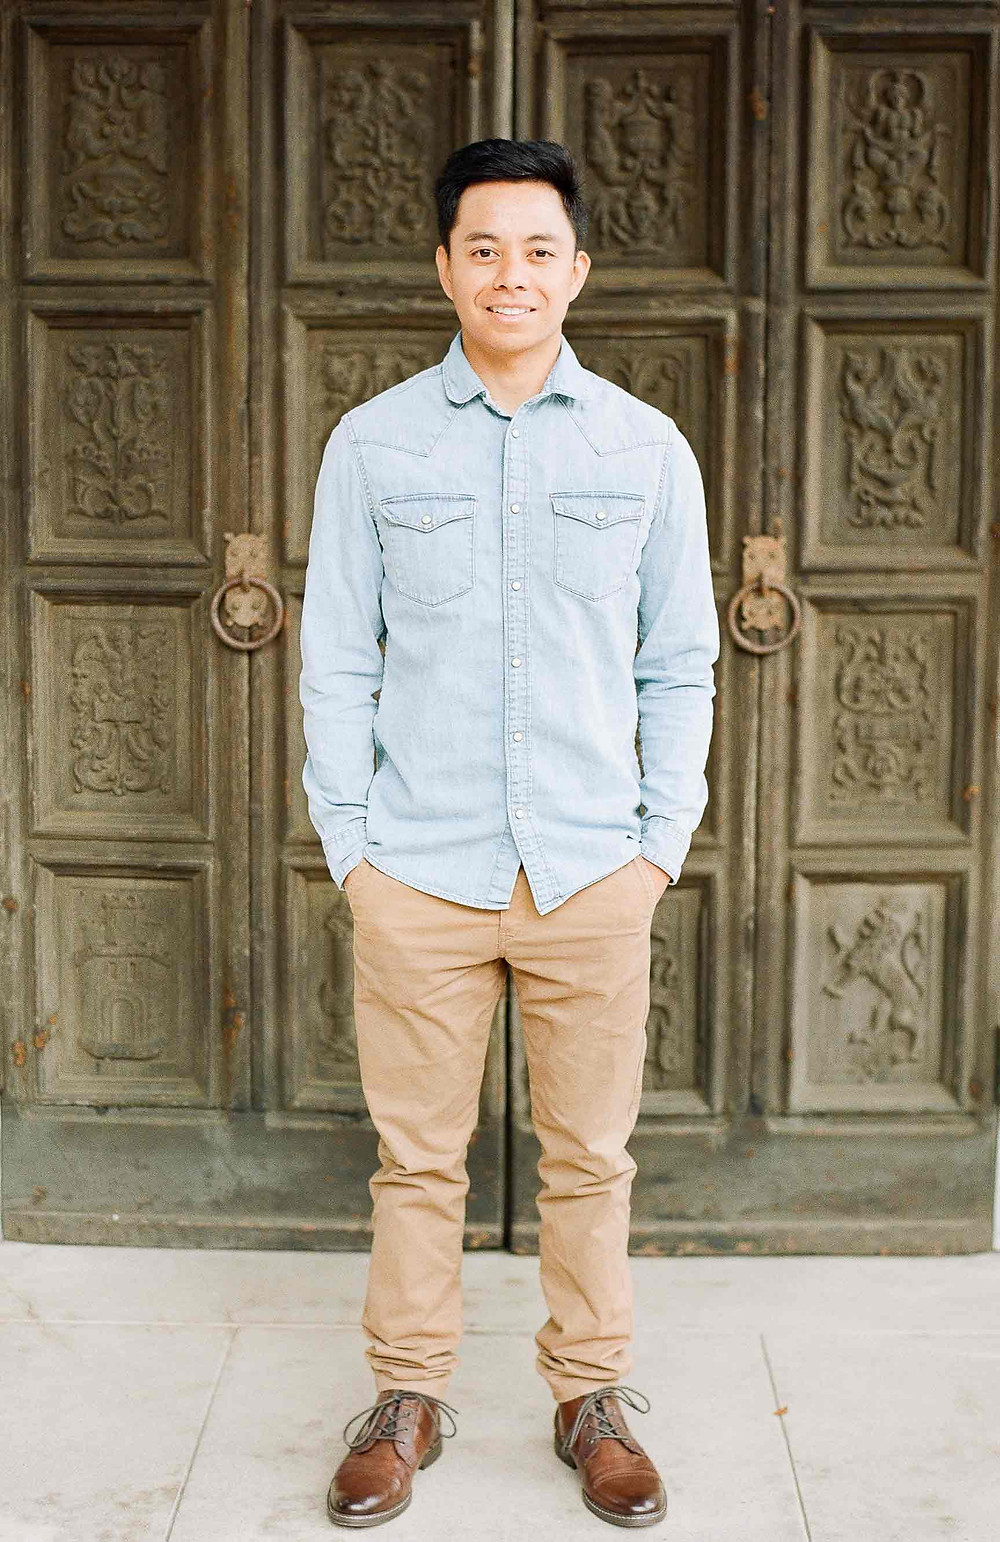 Asian Man in blue shirt looking at camera with hands in pocket